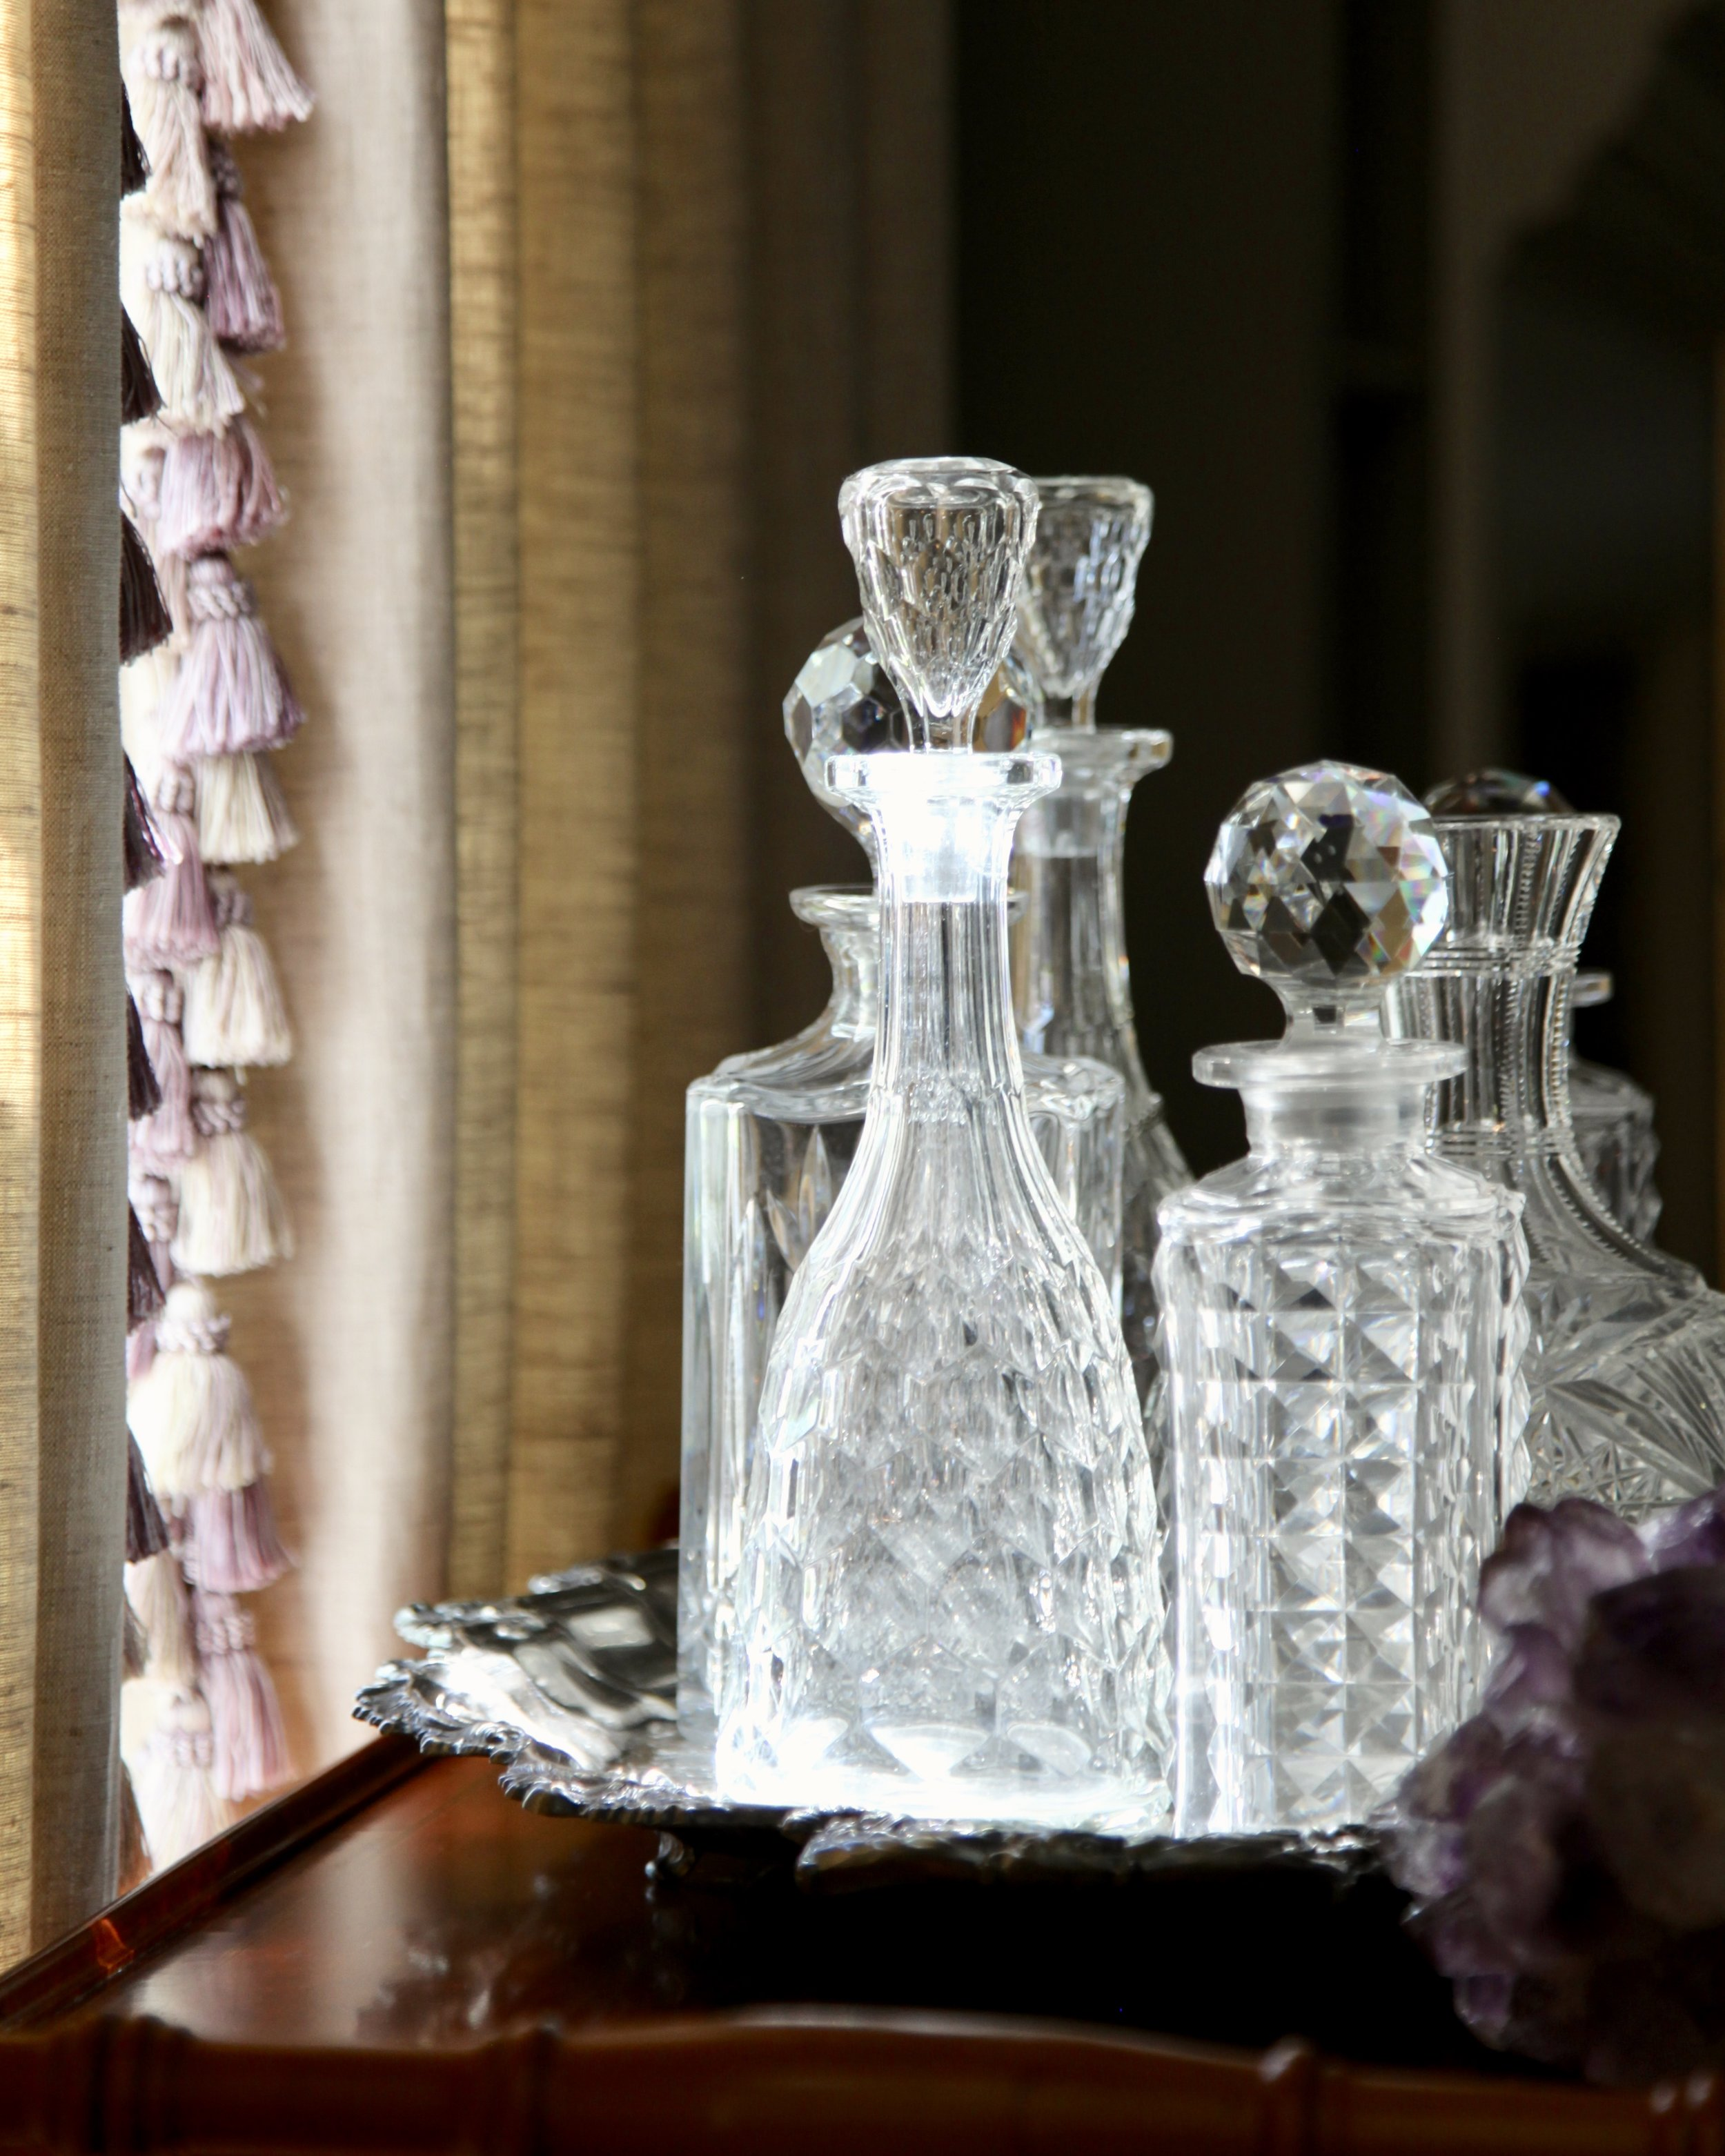 Antique crystal decanters are arranged in groupings. When not is use, they're fine to display without liquids. Their facets expose their beauty.